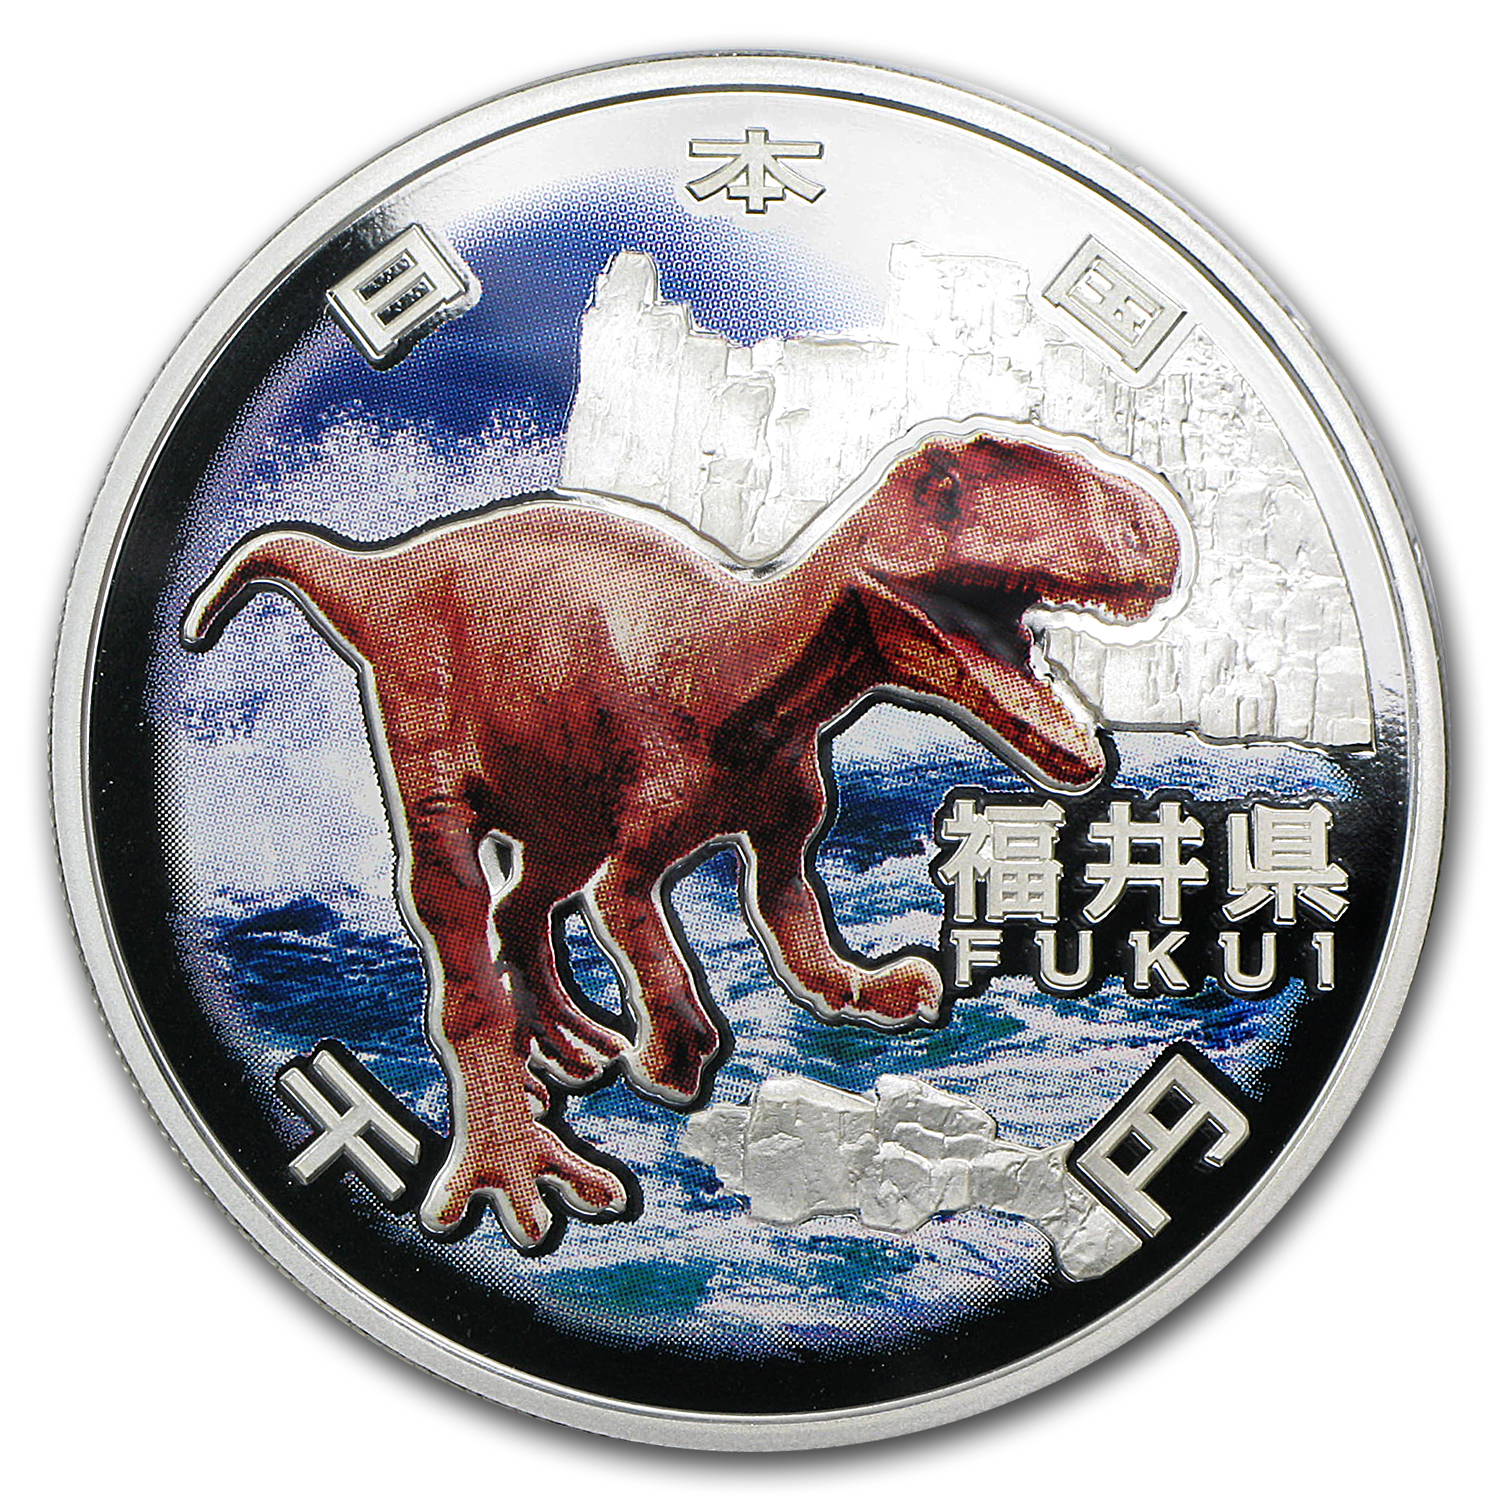 2010 Japan 1 oz Silver 1000 Yen Fukui 10/47 Prefectures Proof